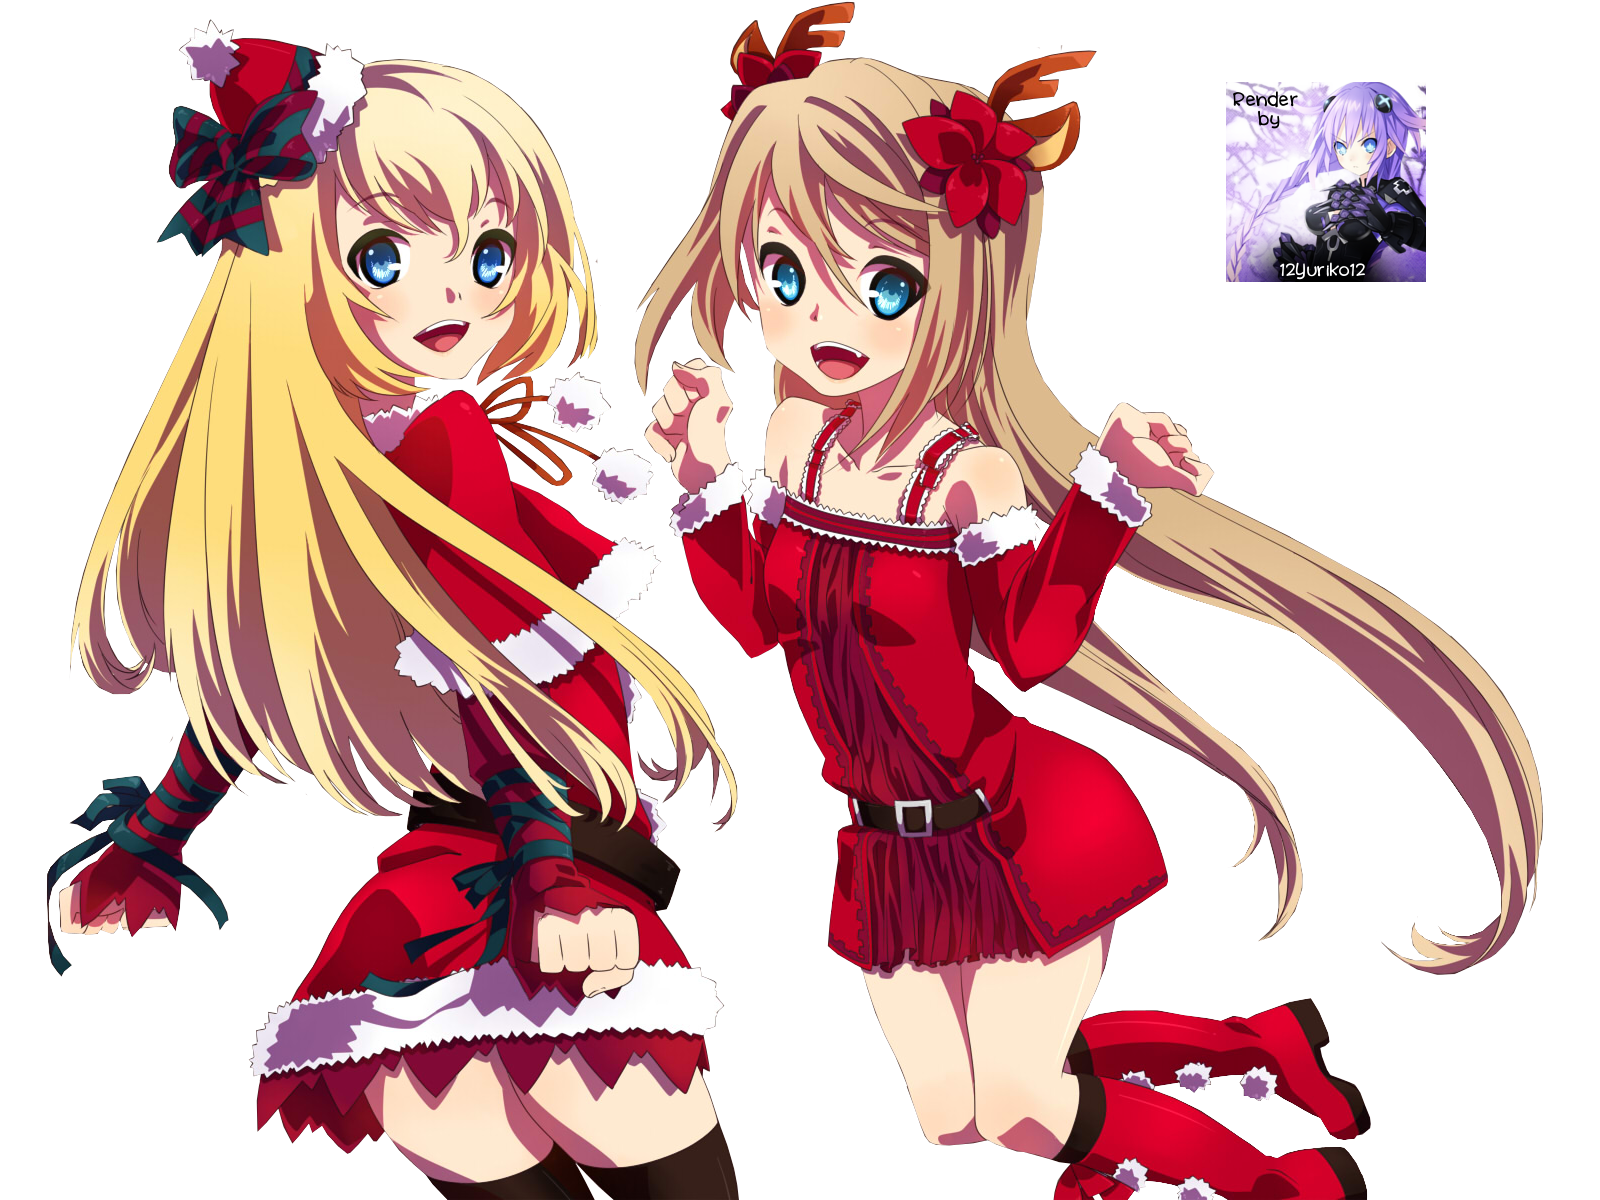 Christmas Anime Render Anime Christmas Render Cashlyn